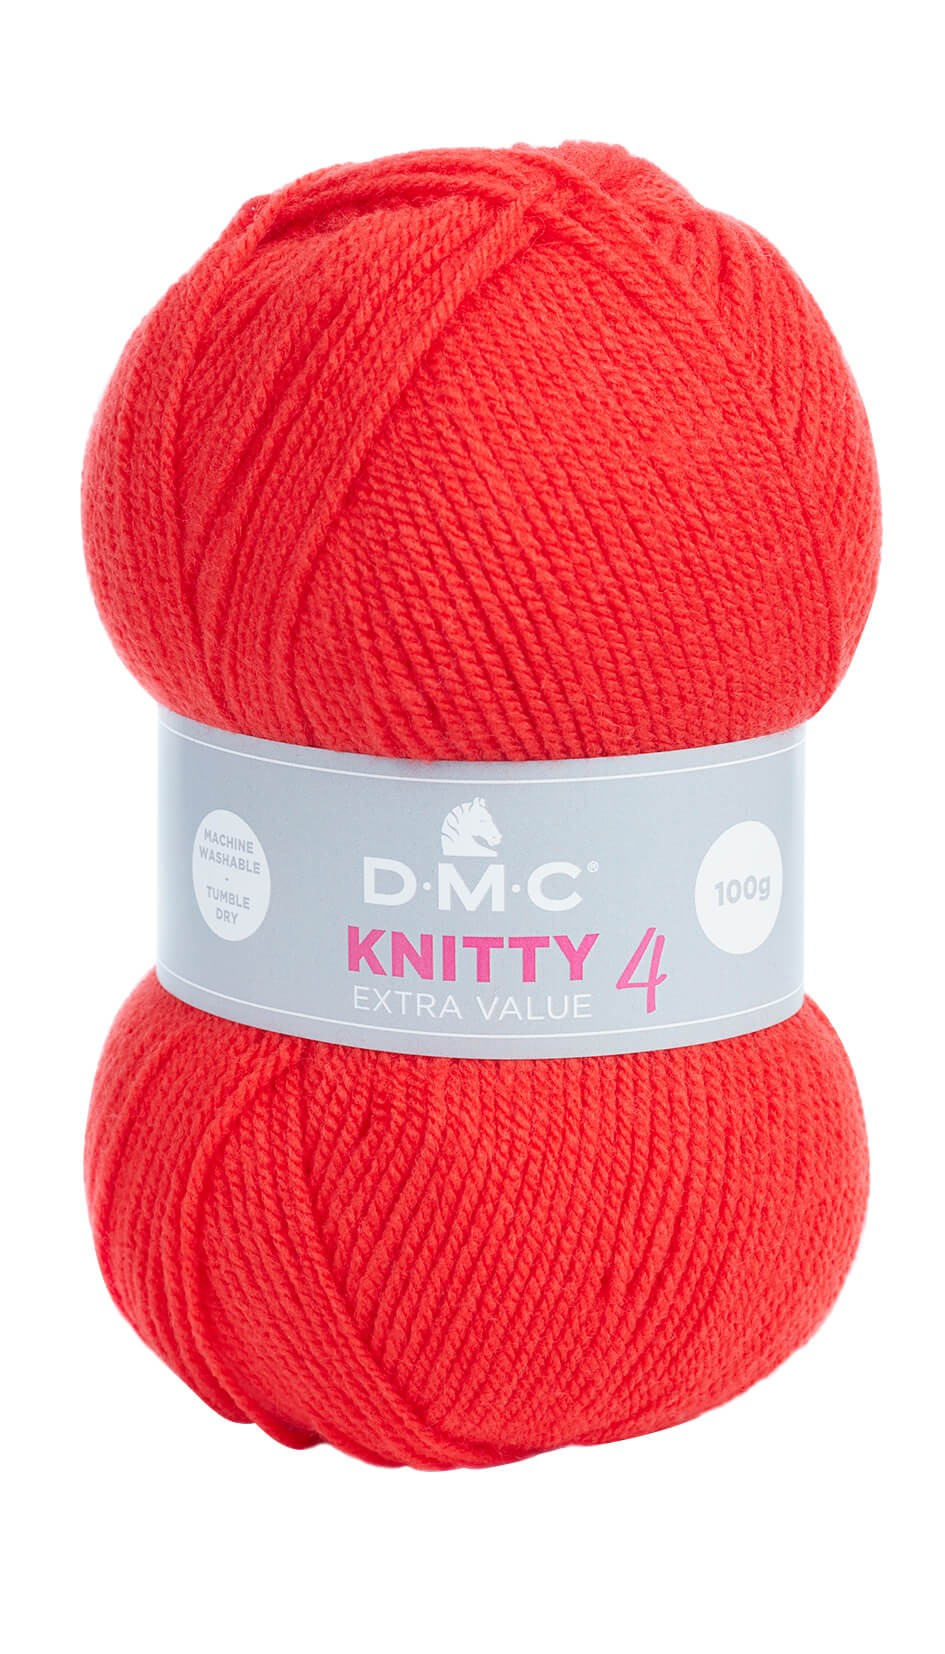 Lana acrílica DMC Knitty 4 Just Knitting 100 g 690